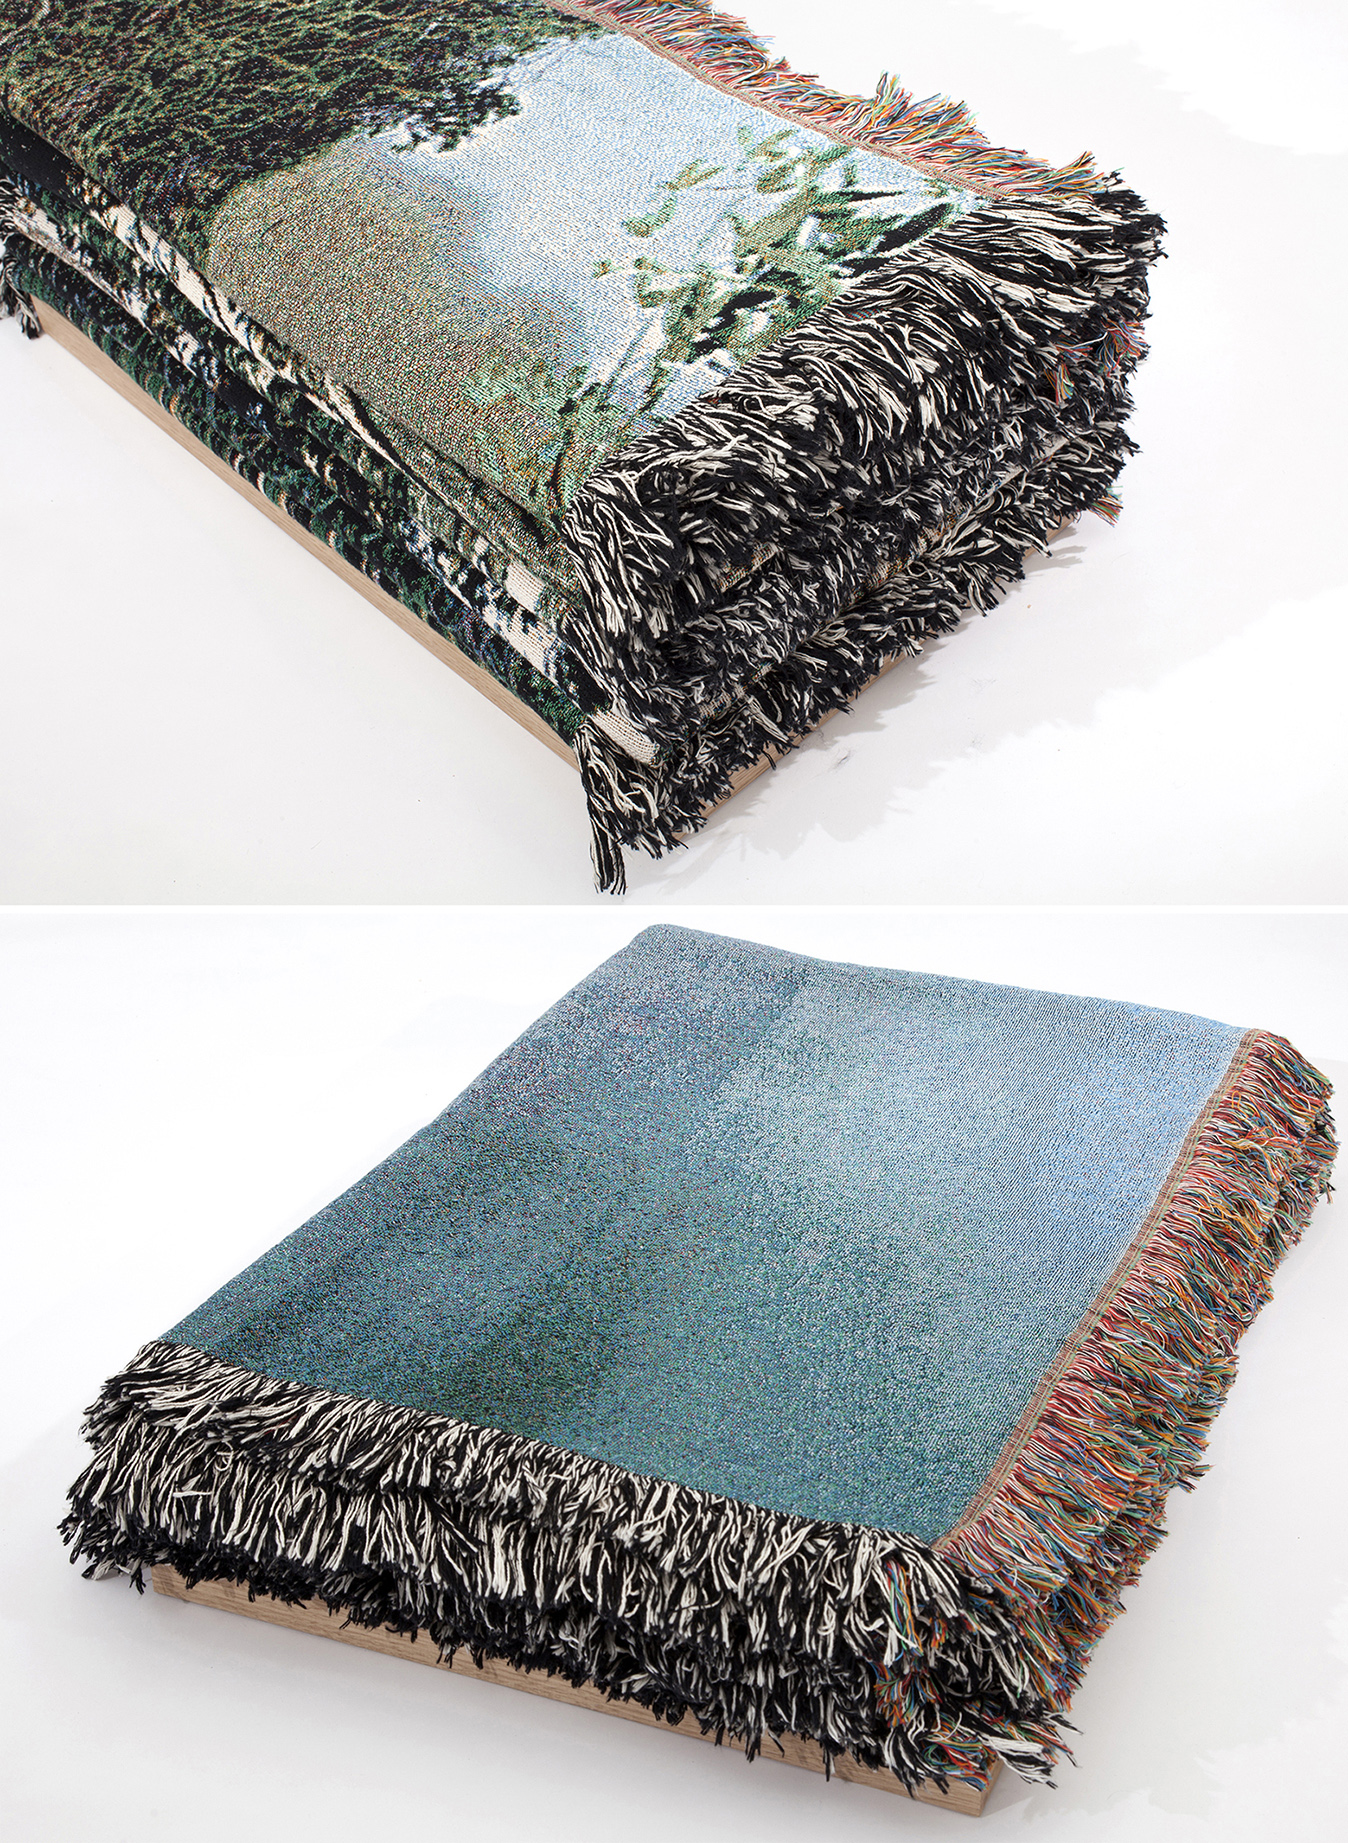 Deb Mansfield, Folded Littoral Zones, 2013, 11 photographic-digital tapestries folded into two piles, dimensions variable